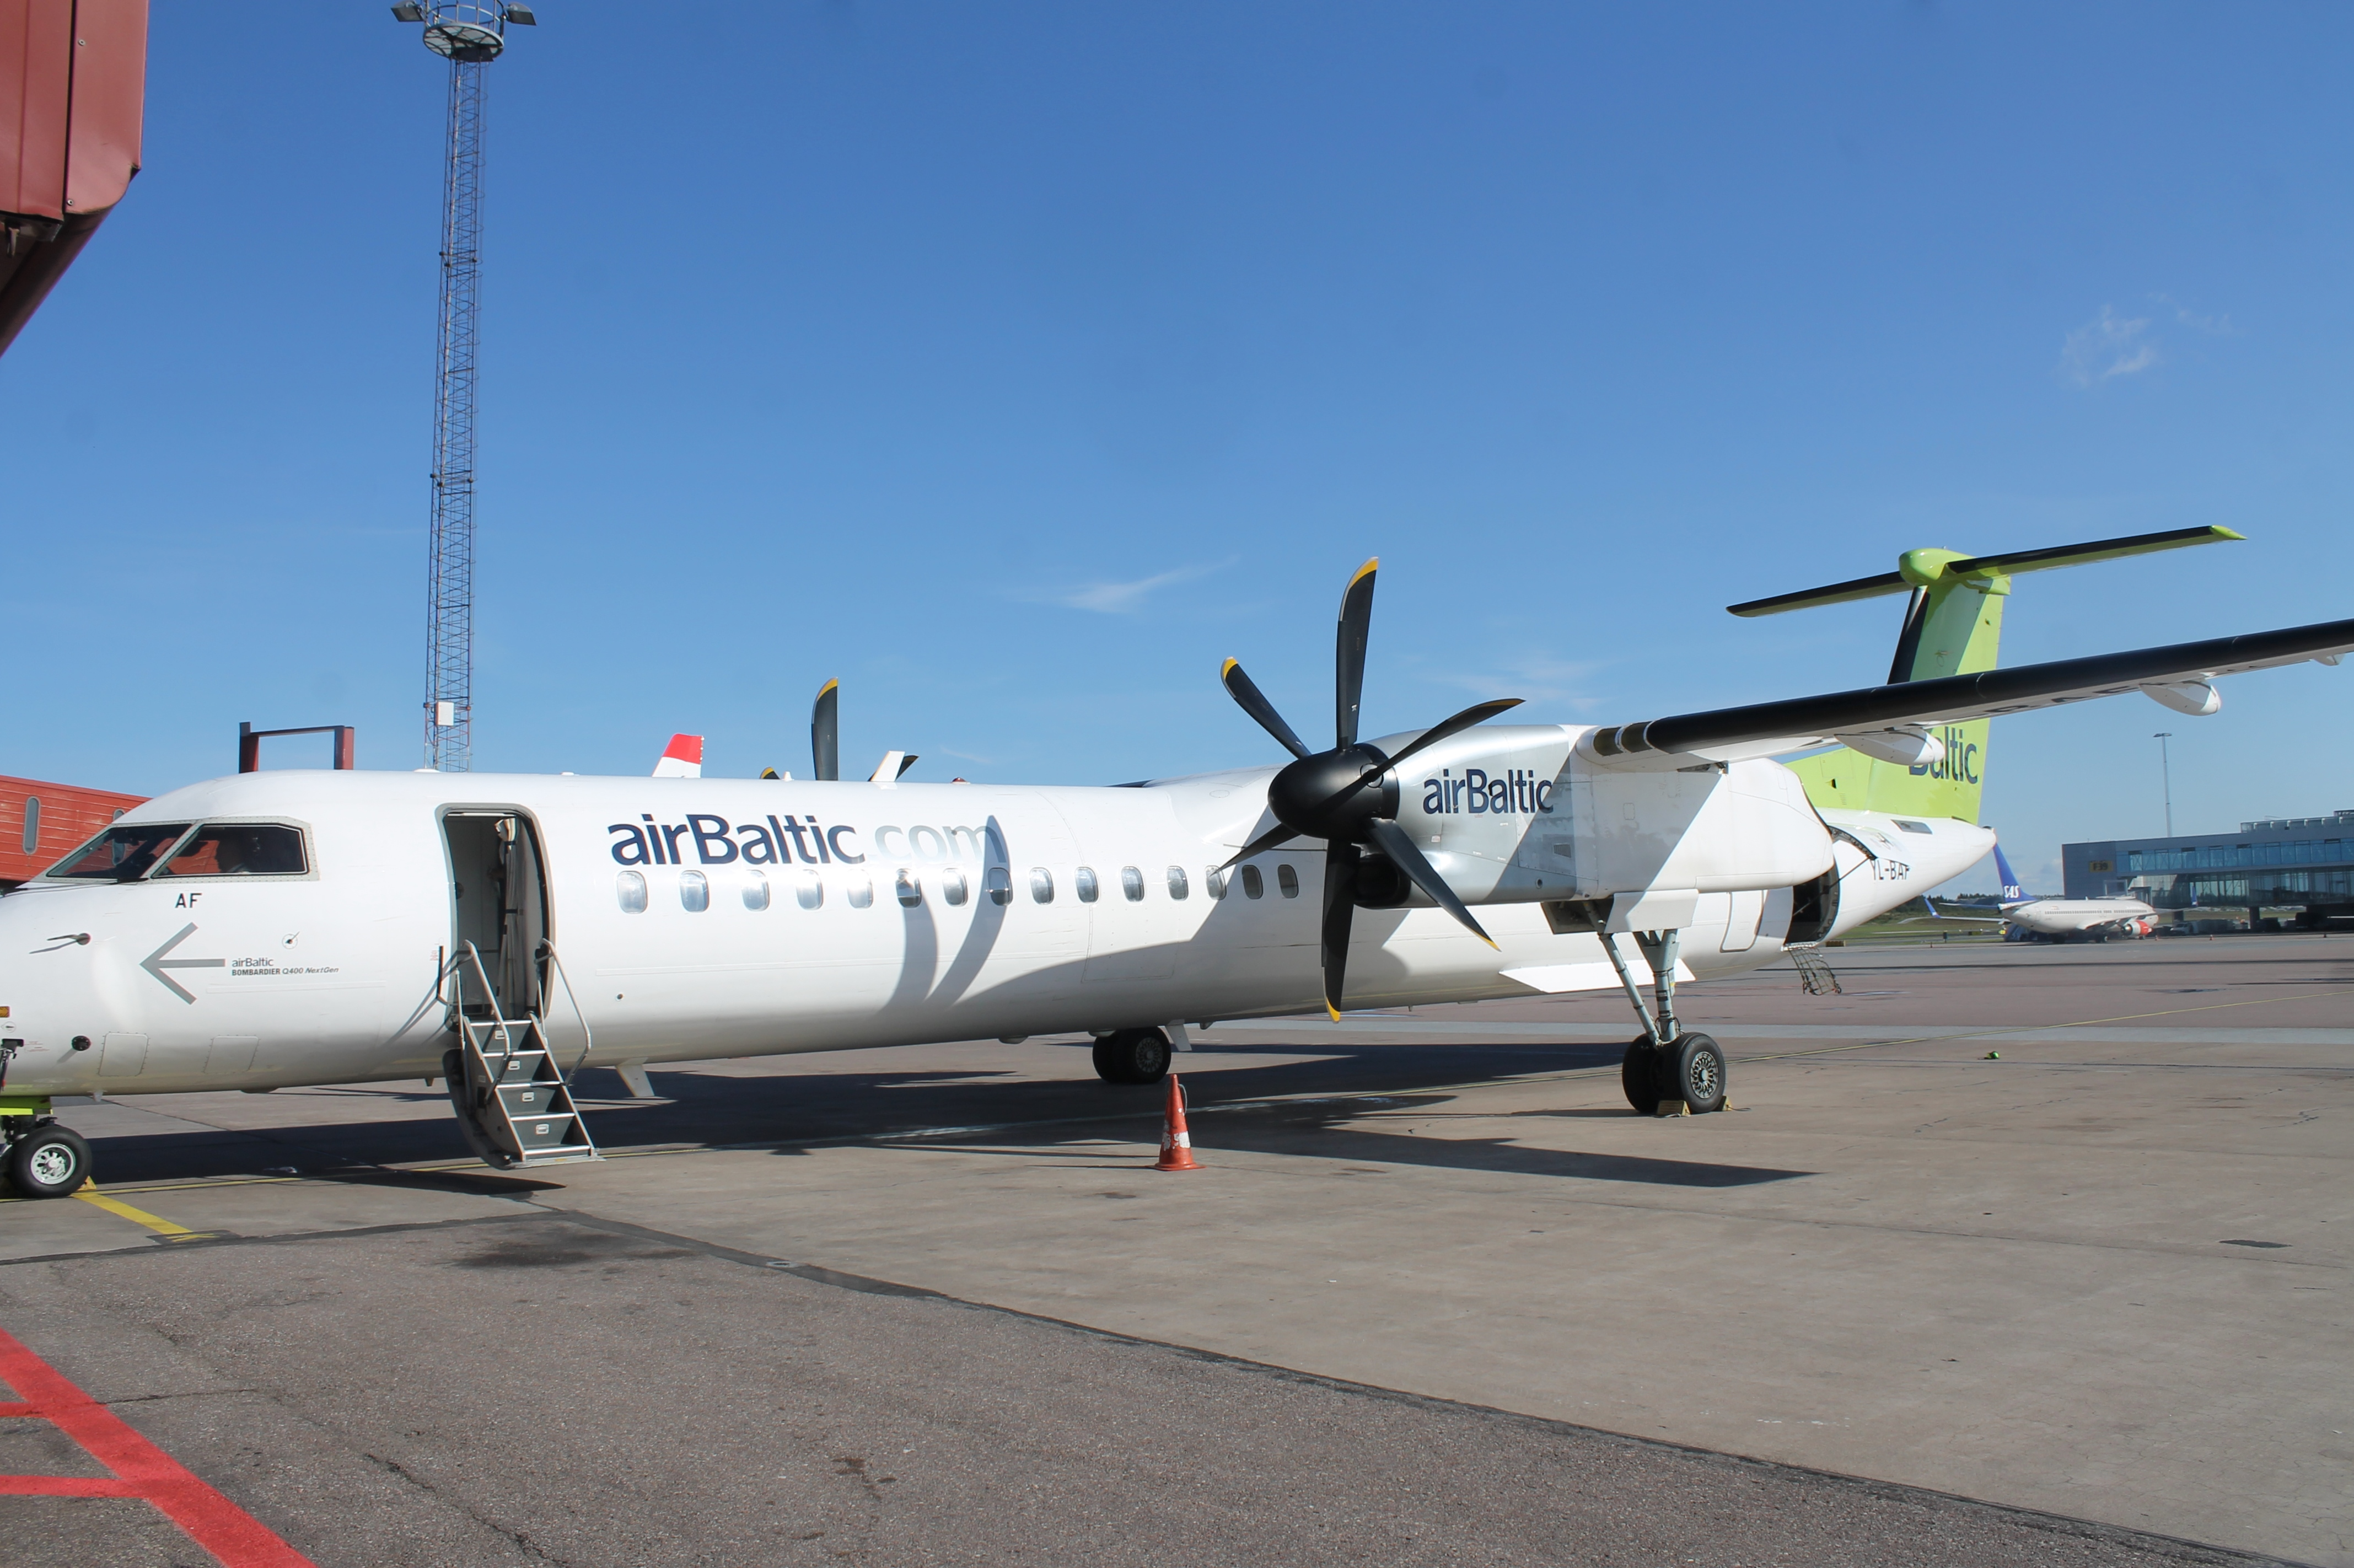 Airbaltic plane